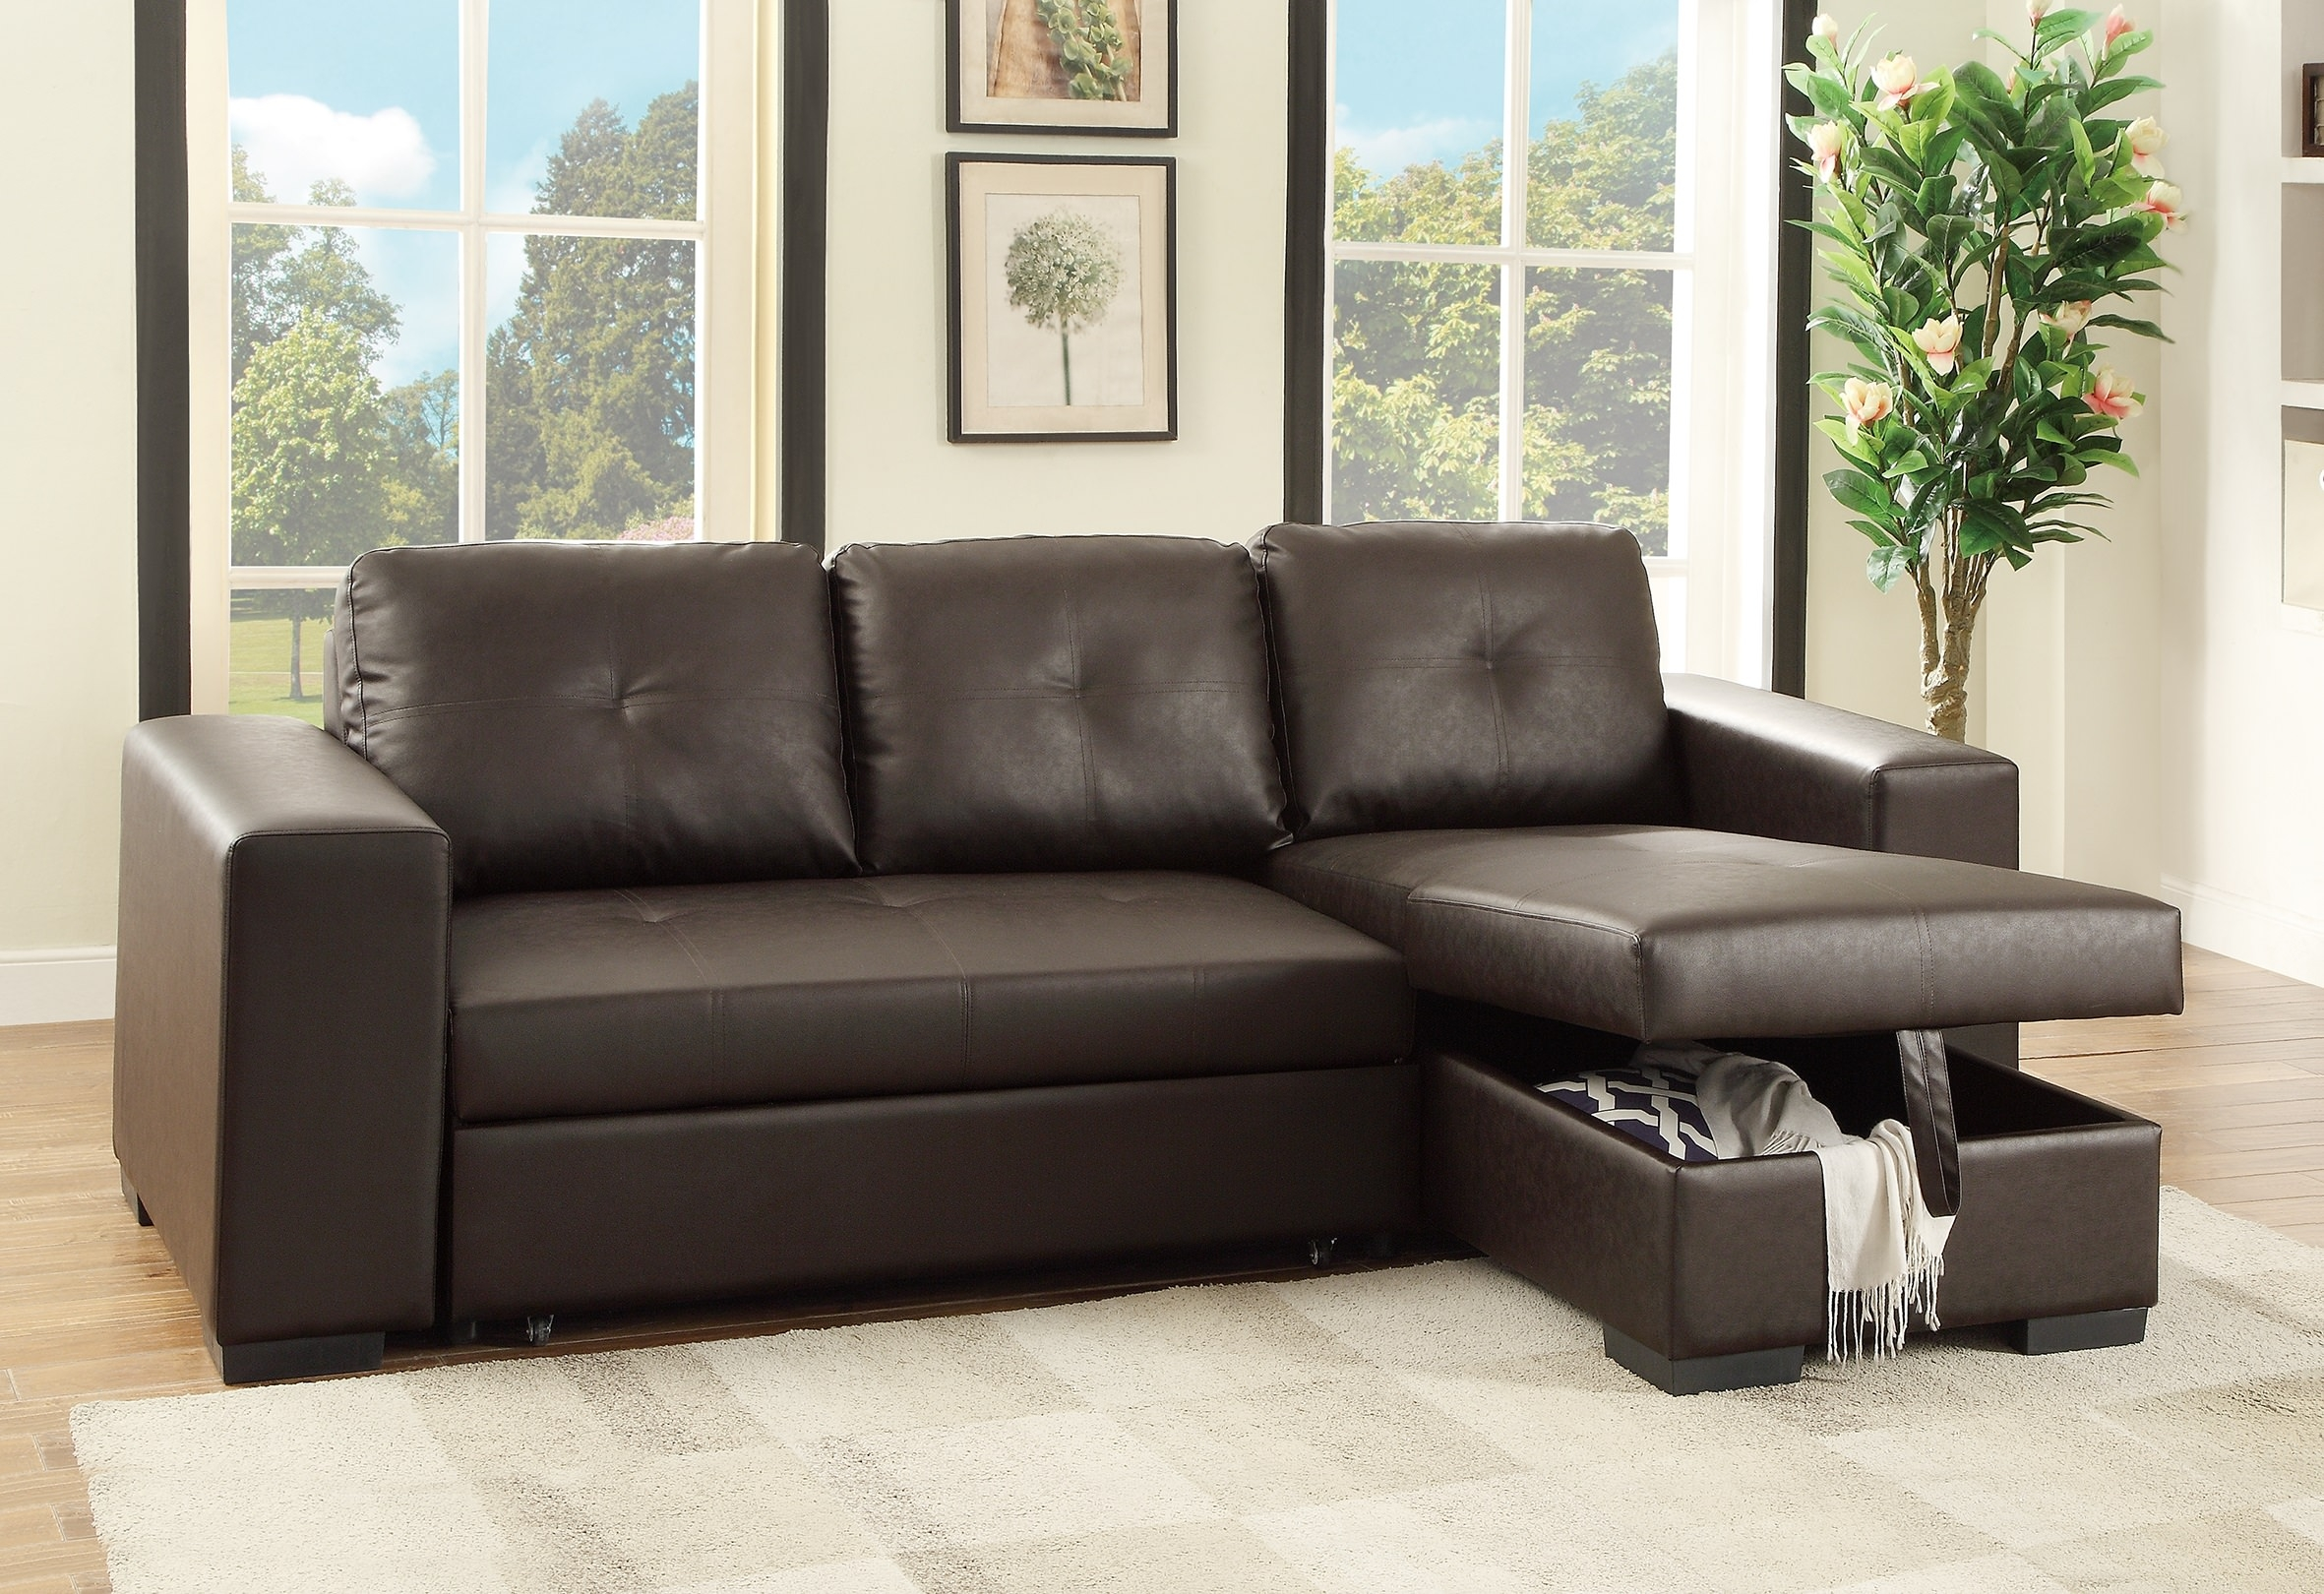 F6930 Espresso Convertible Sectional Sofa Poundex Inside Convertible Sectional Sofas (Image 6 of 15)